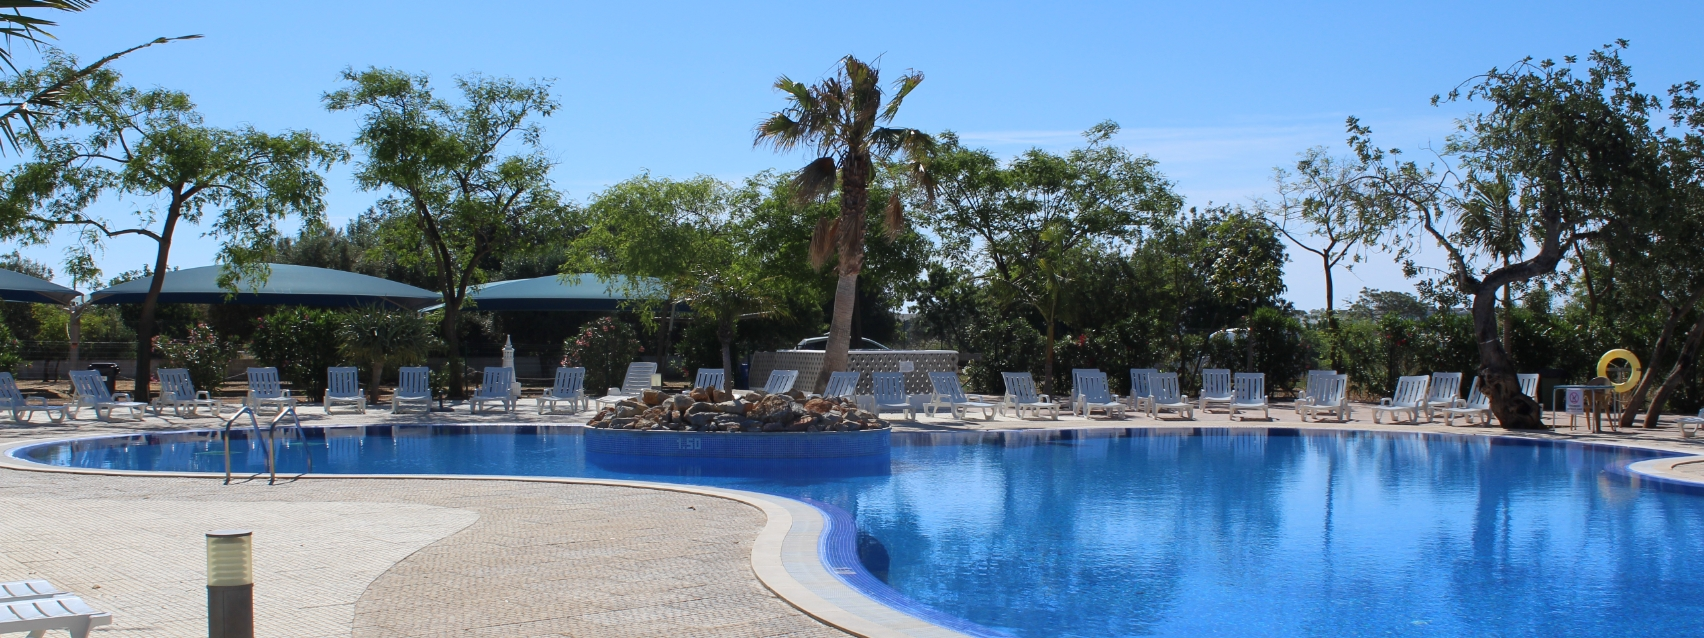 About Camping Ria Formosa - Algarve - Big Campsite near the beach - bungalows - tendas - mobile homes